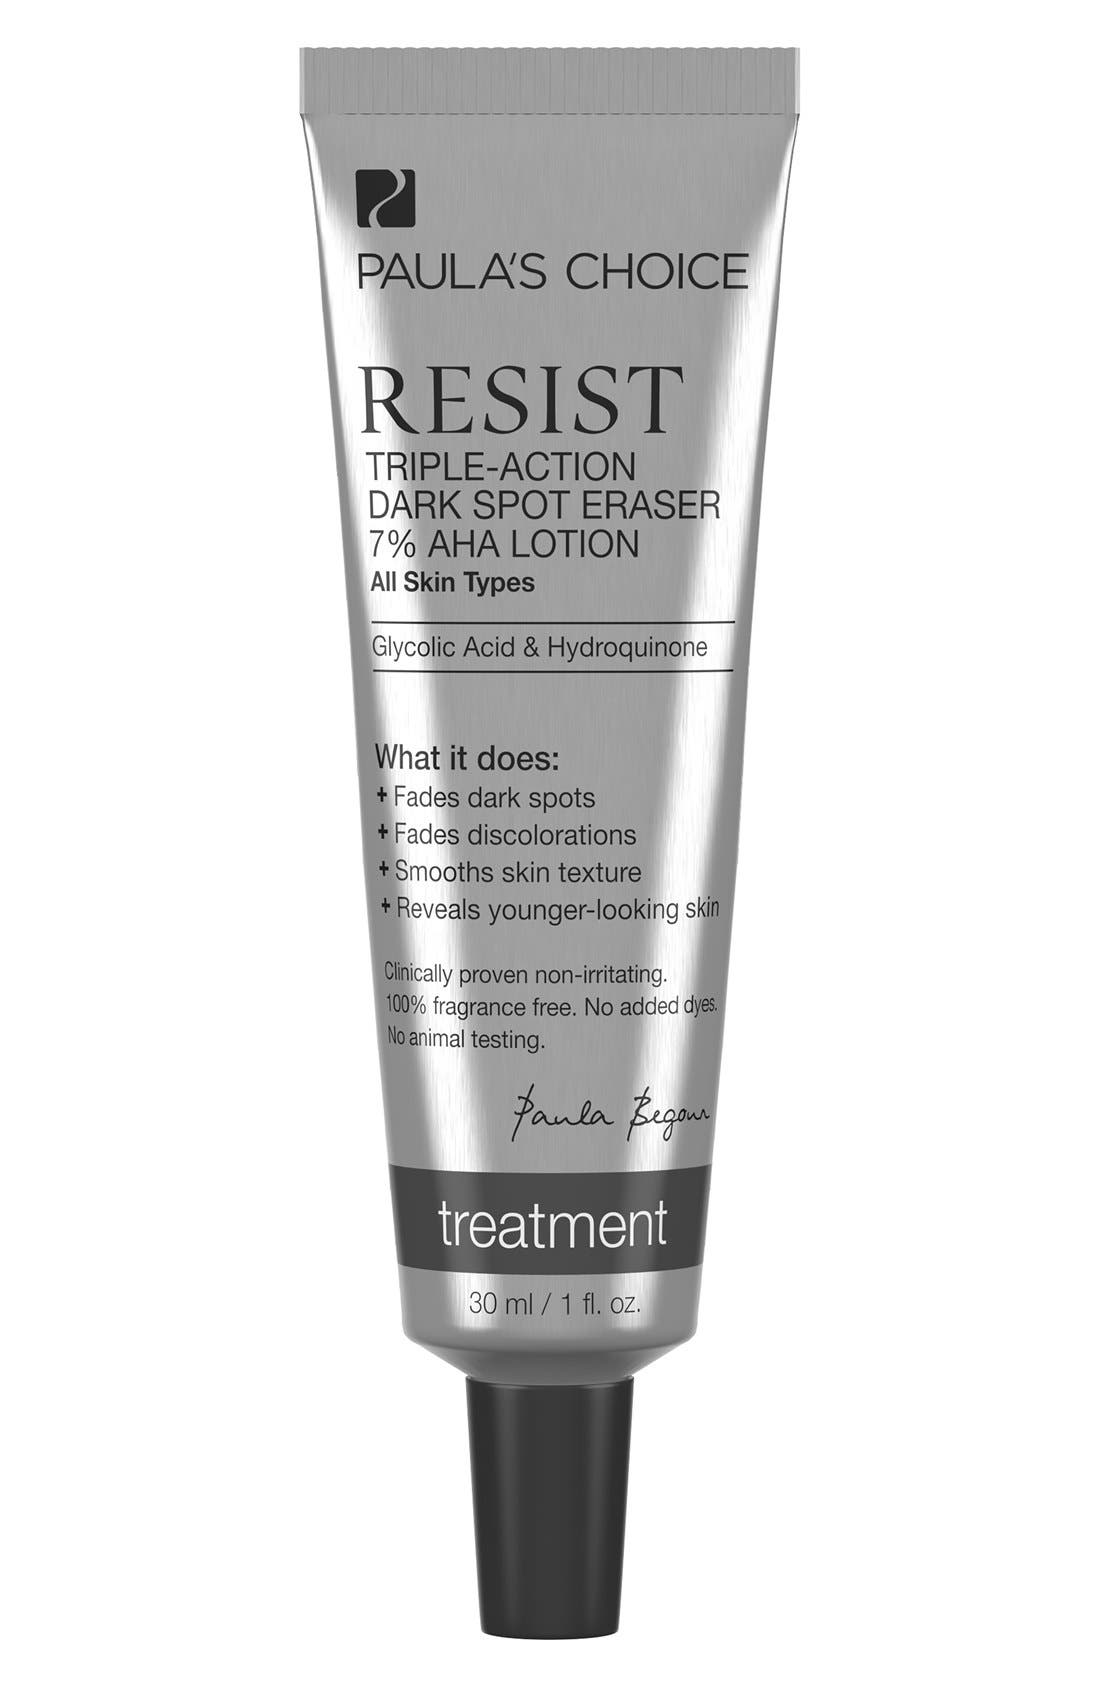 Paula's Choice Resist Triple-Action Dark Spot Eraser 7% AHA Lotion